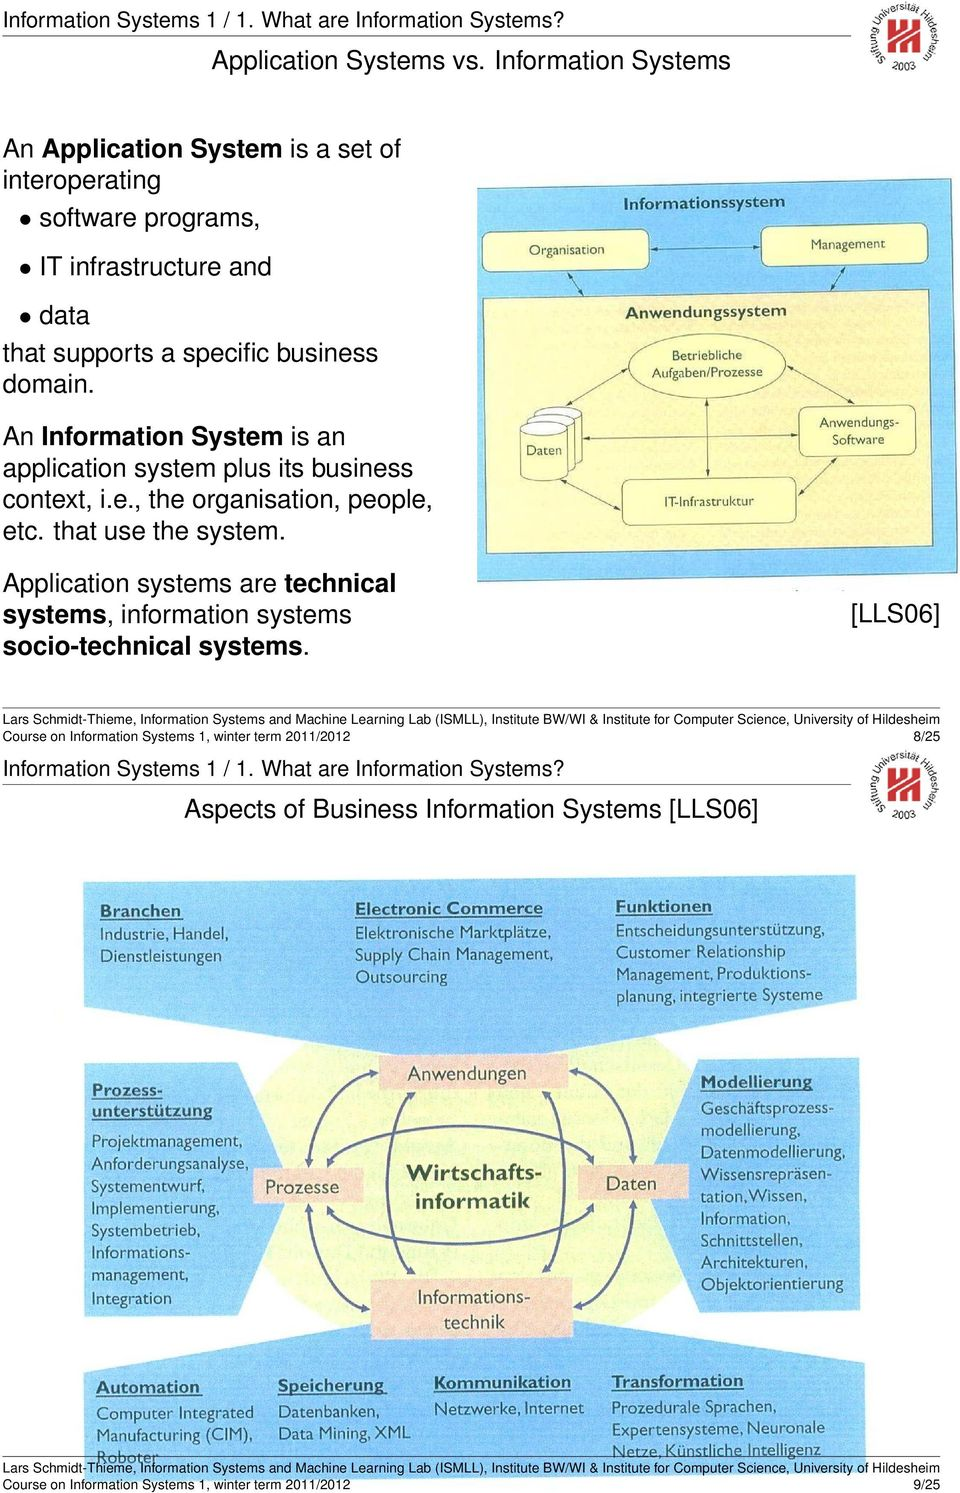 An Information System is an application system plus its business context, i.e., the organisation, people, etc. that use the system.